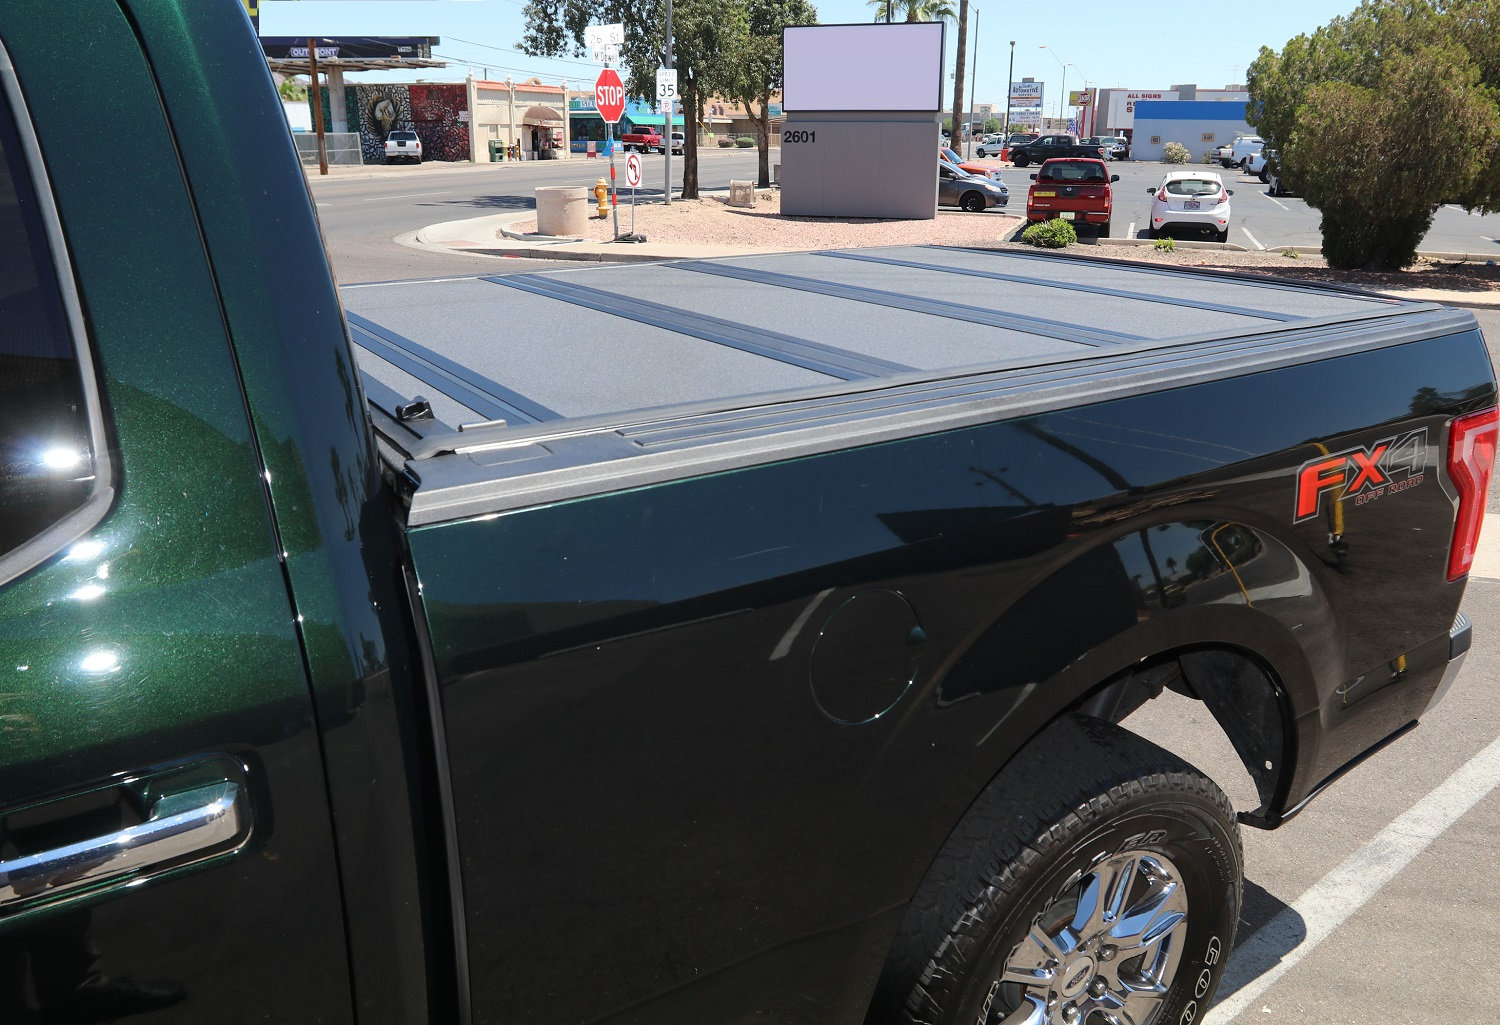 FORD F150 BAKFLIP MX4 448327 Truck Bed Cover